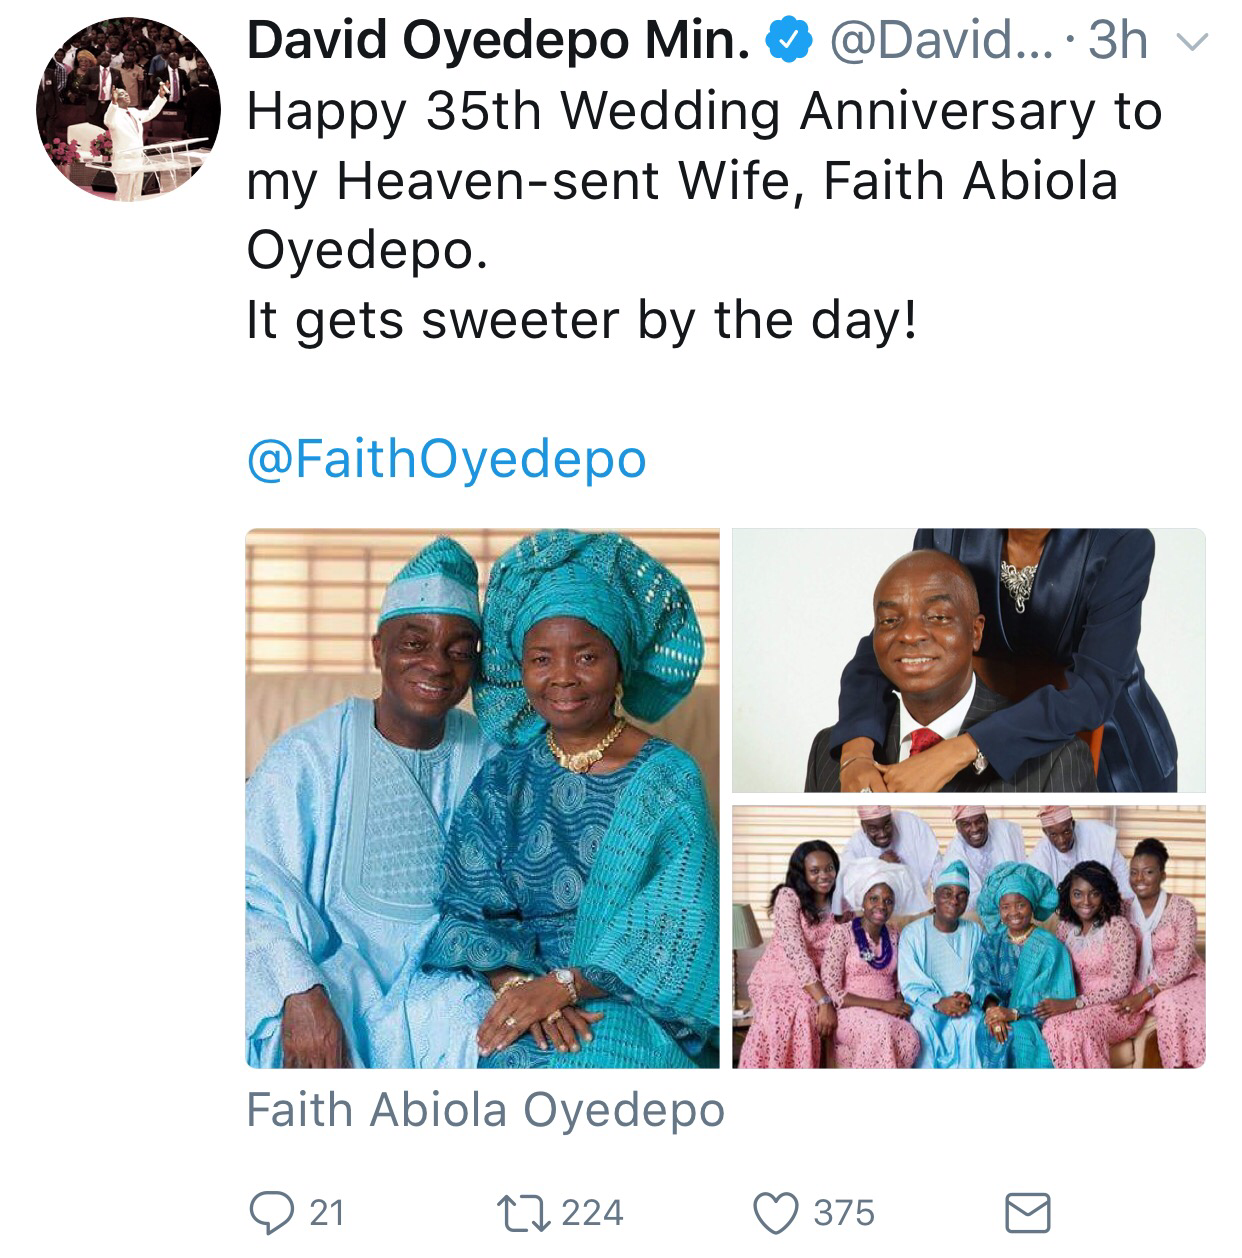 Bishop David Oyedepo And Wife Celebrate 35th Wedding Anniversary